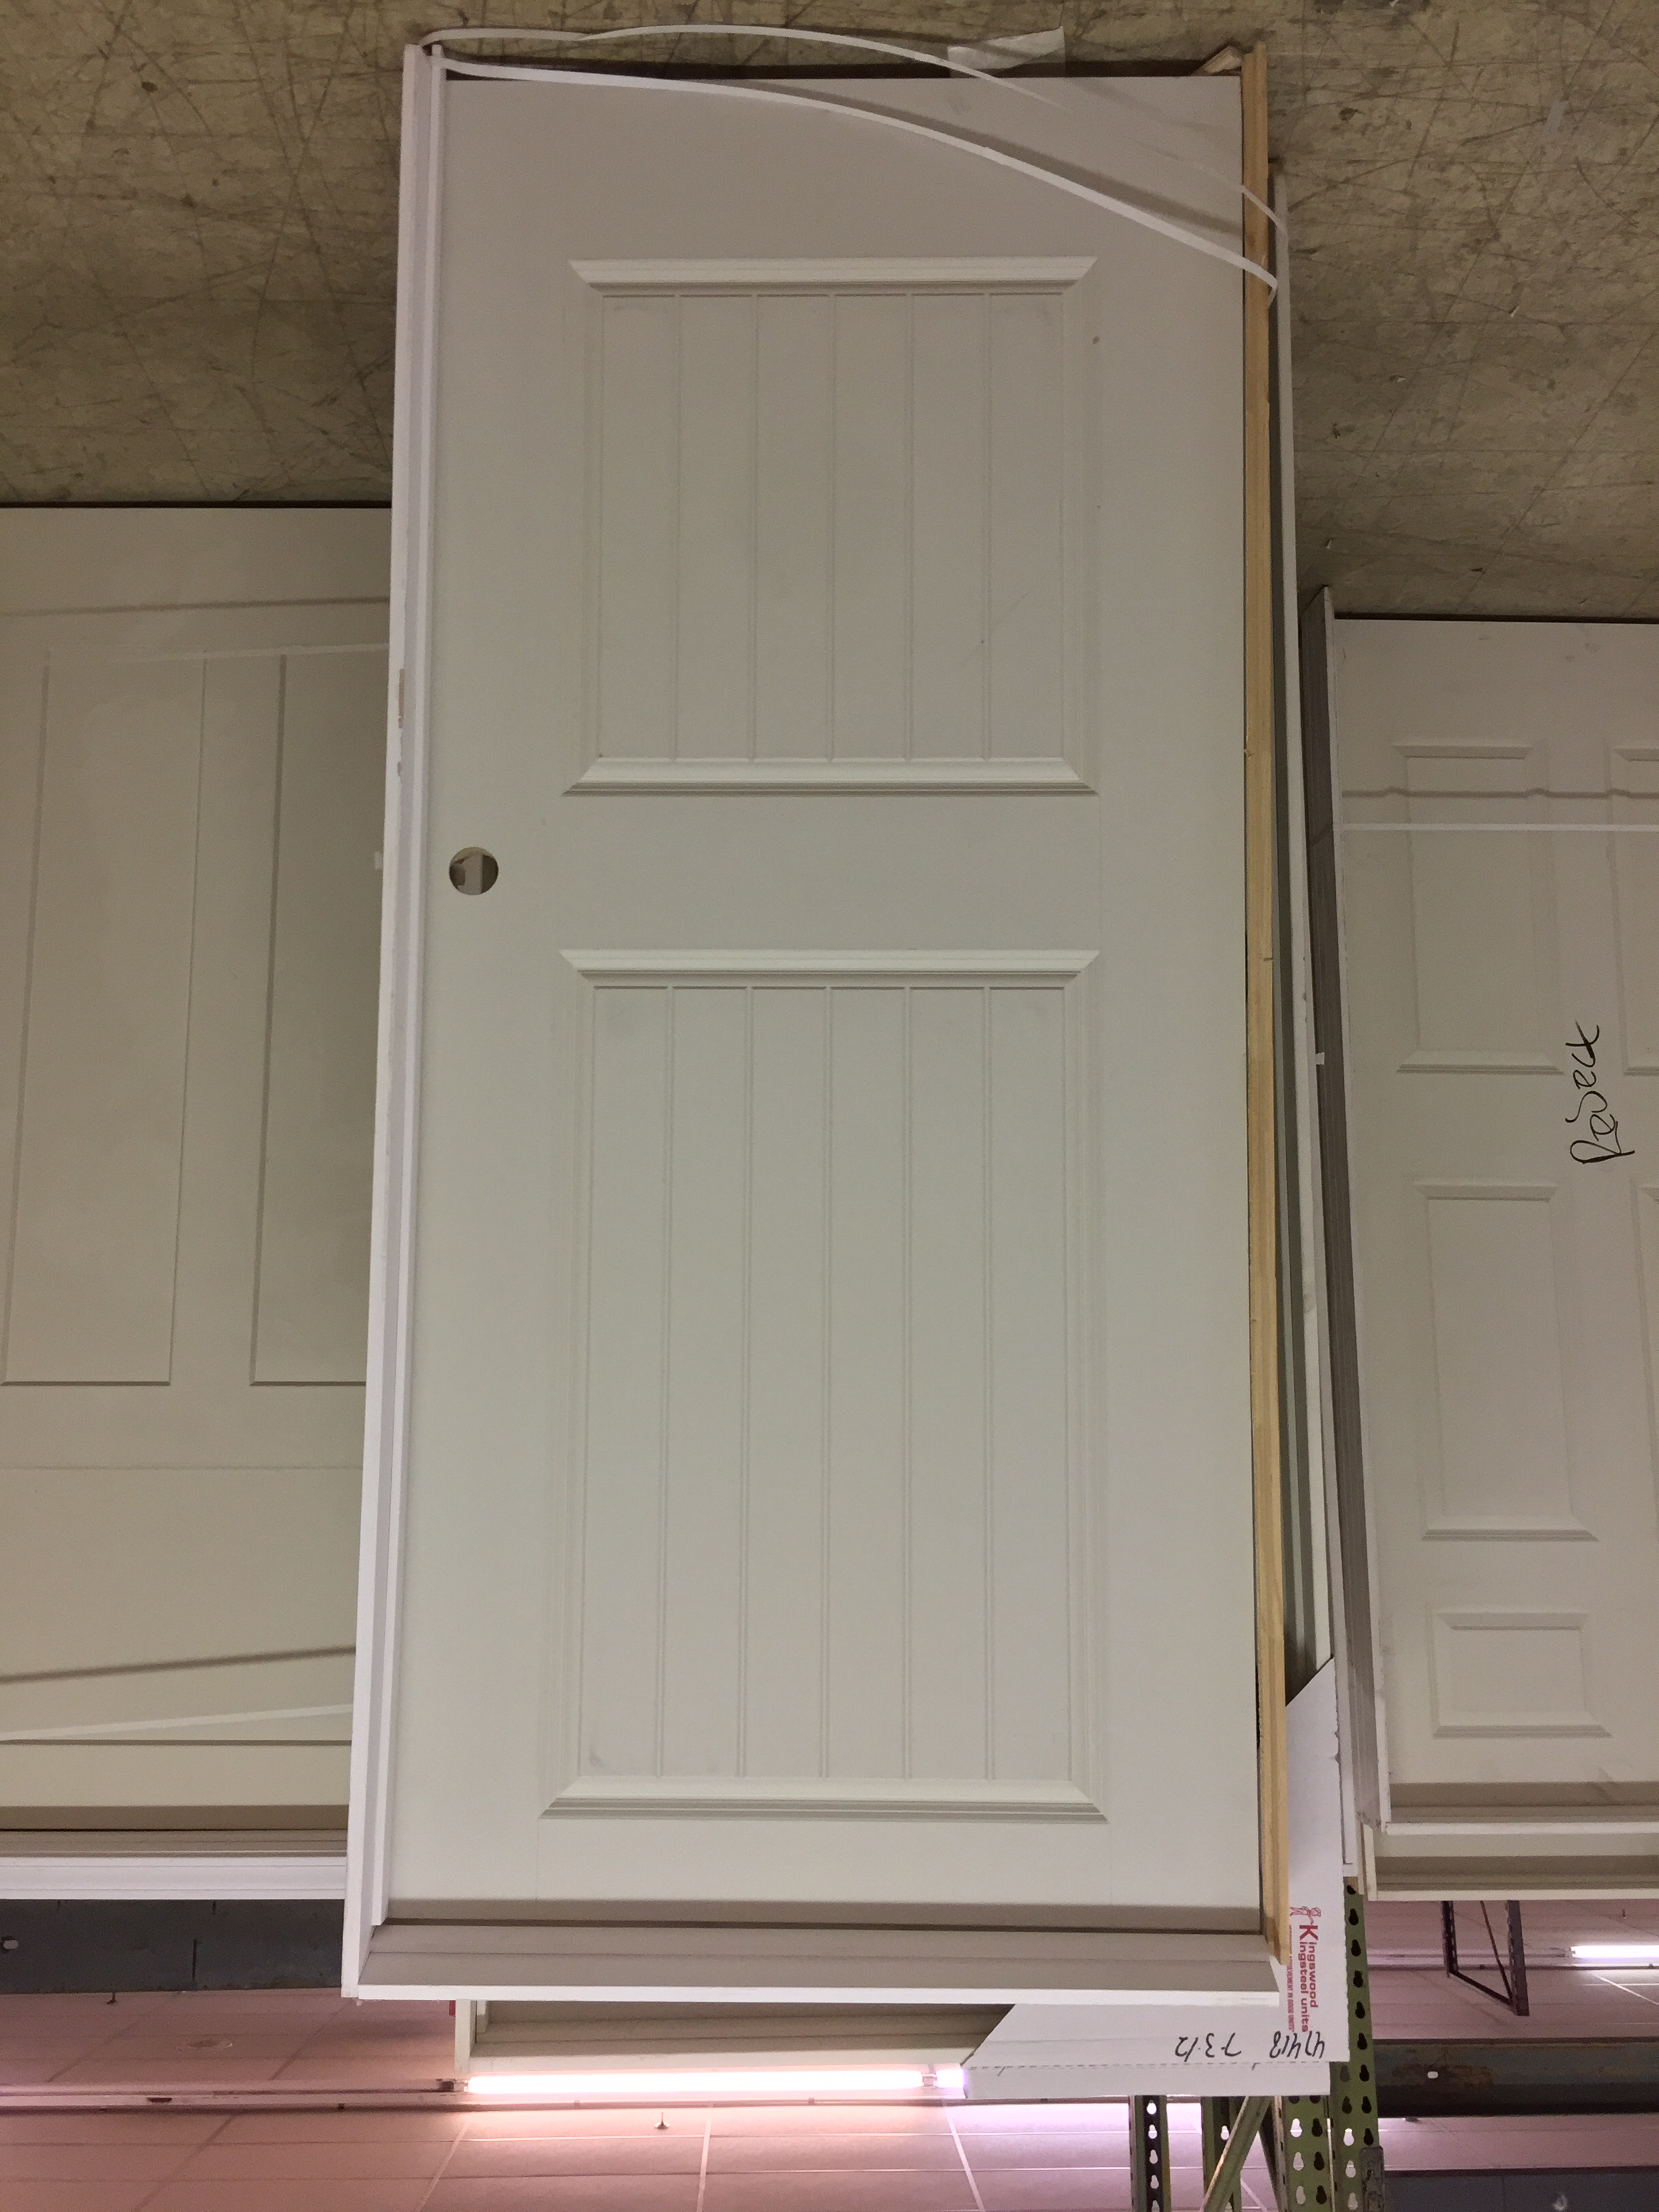 Many styles of interior doors